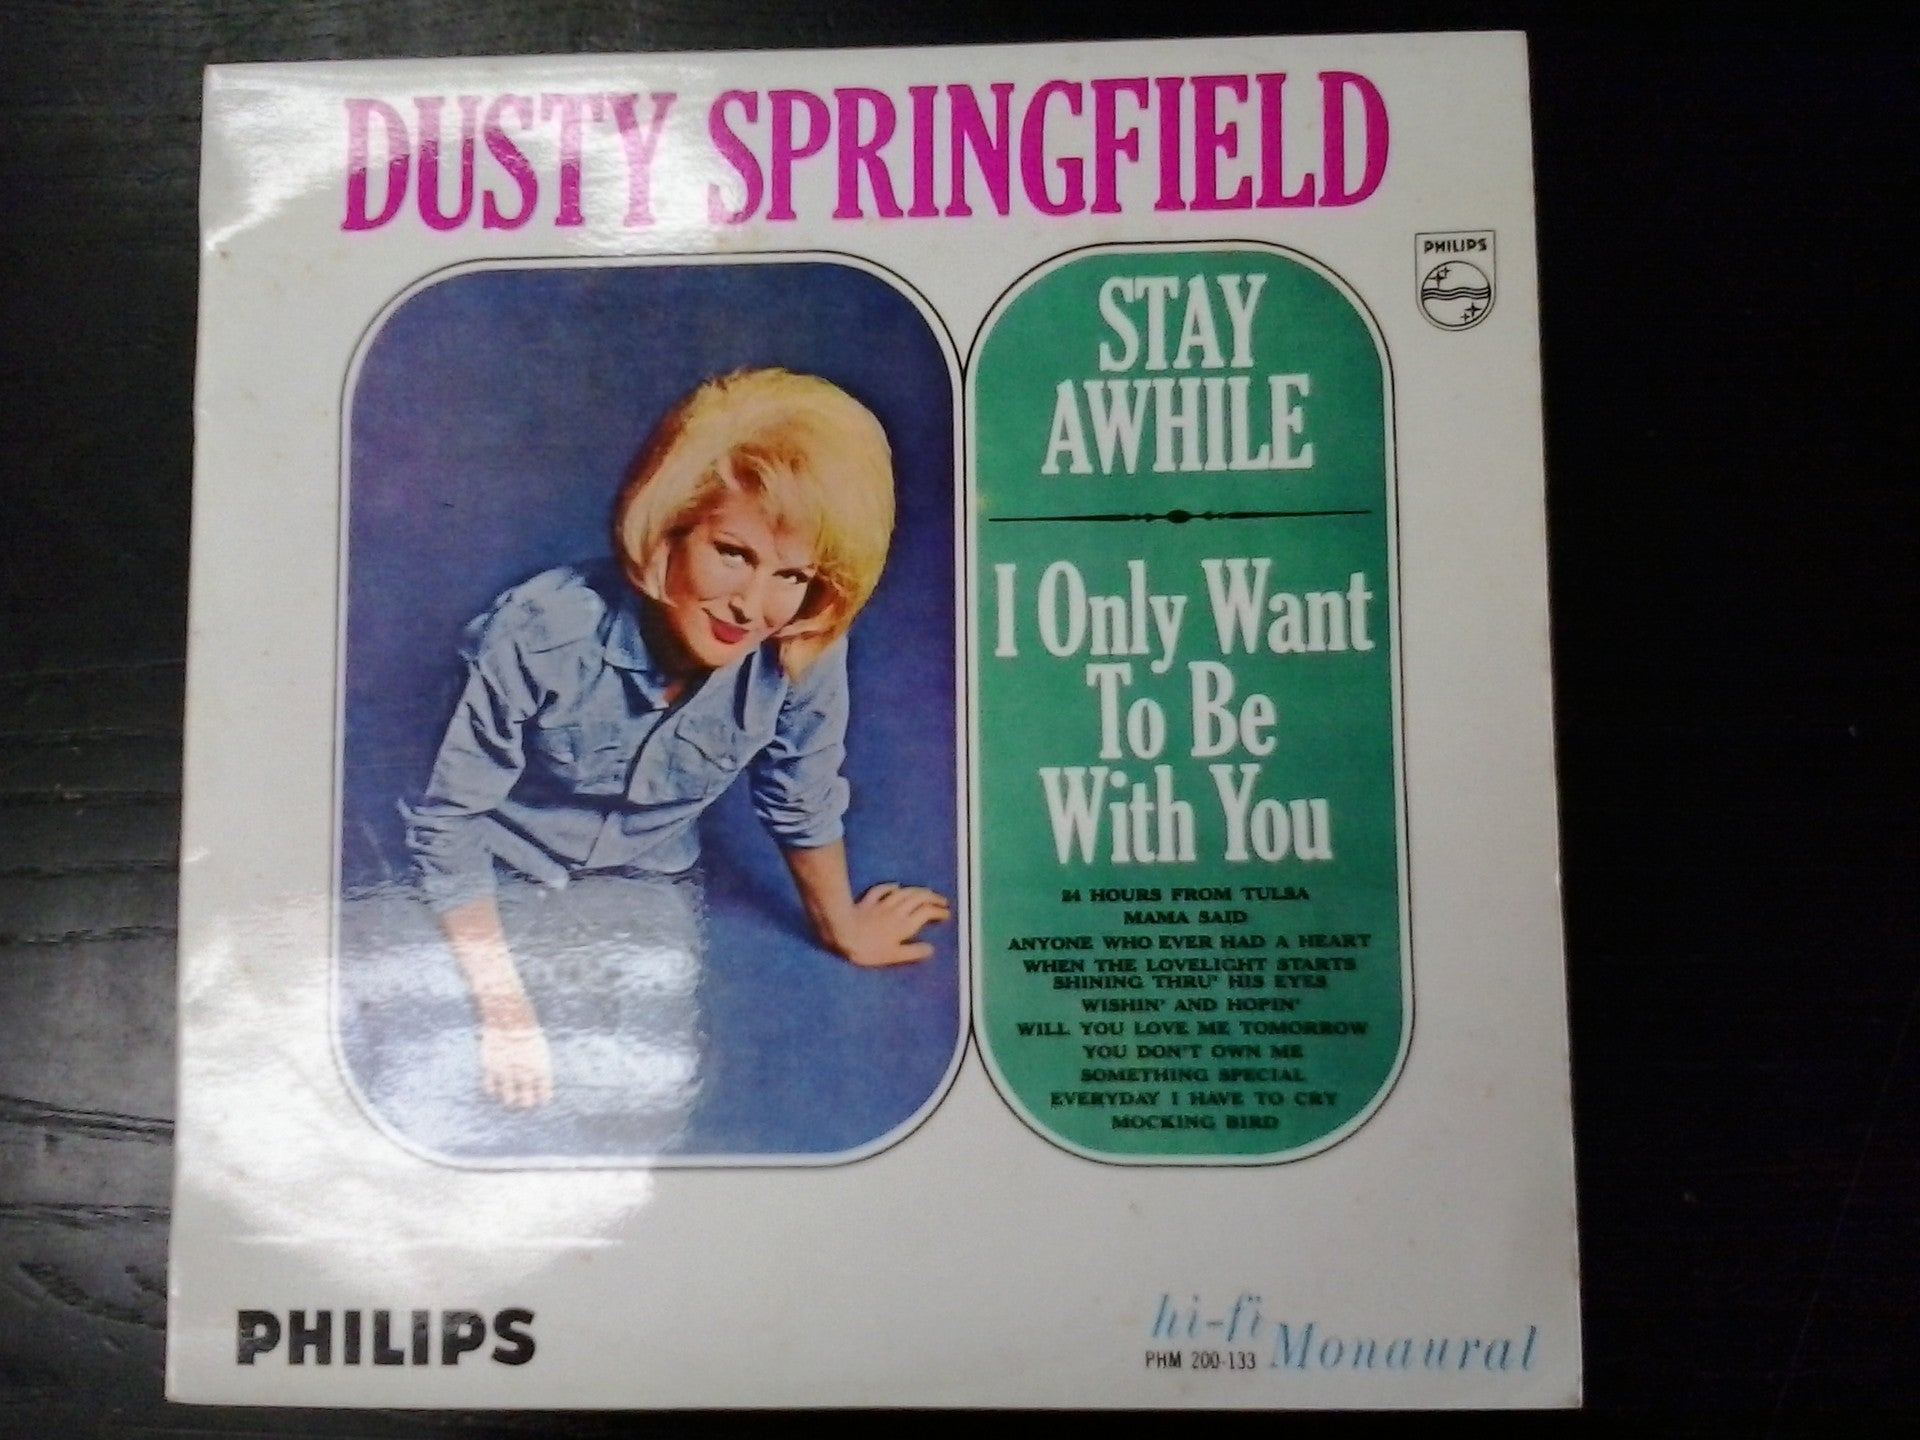 SPRINGFIELD DUSTY-STAY AWHILE I ONLY WANT TO BE WITH YOU LP VG VGPLUS